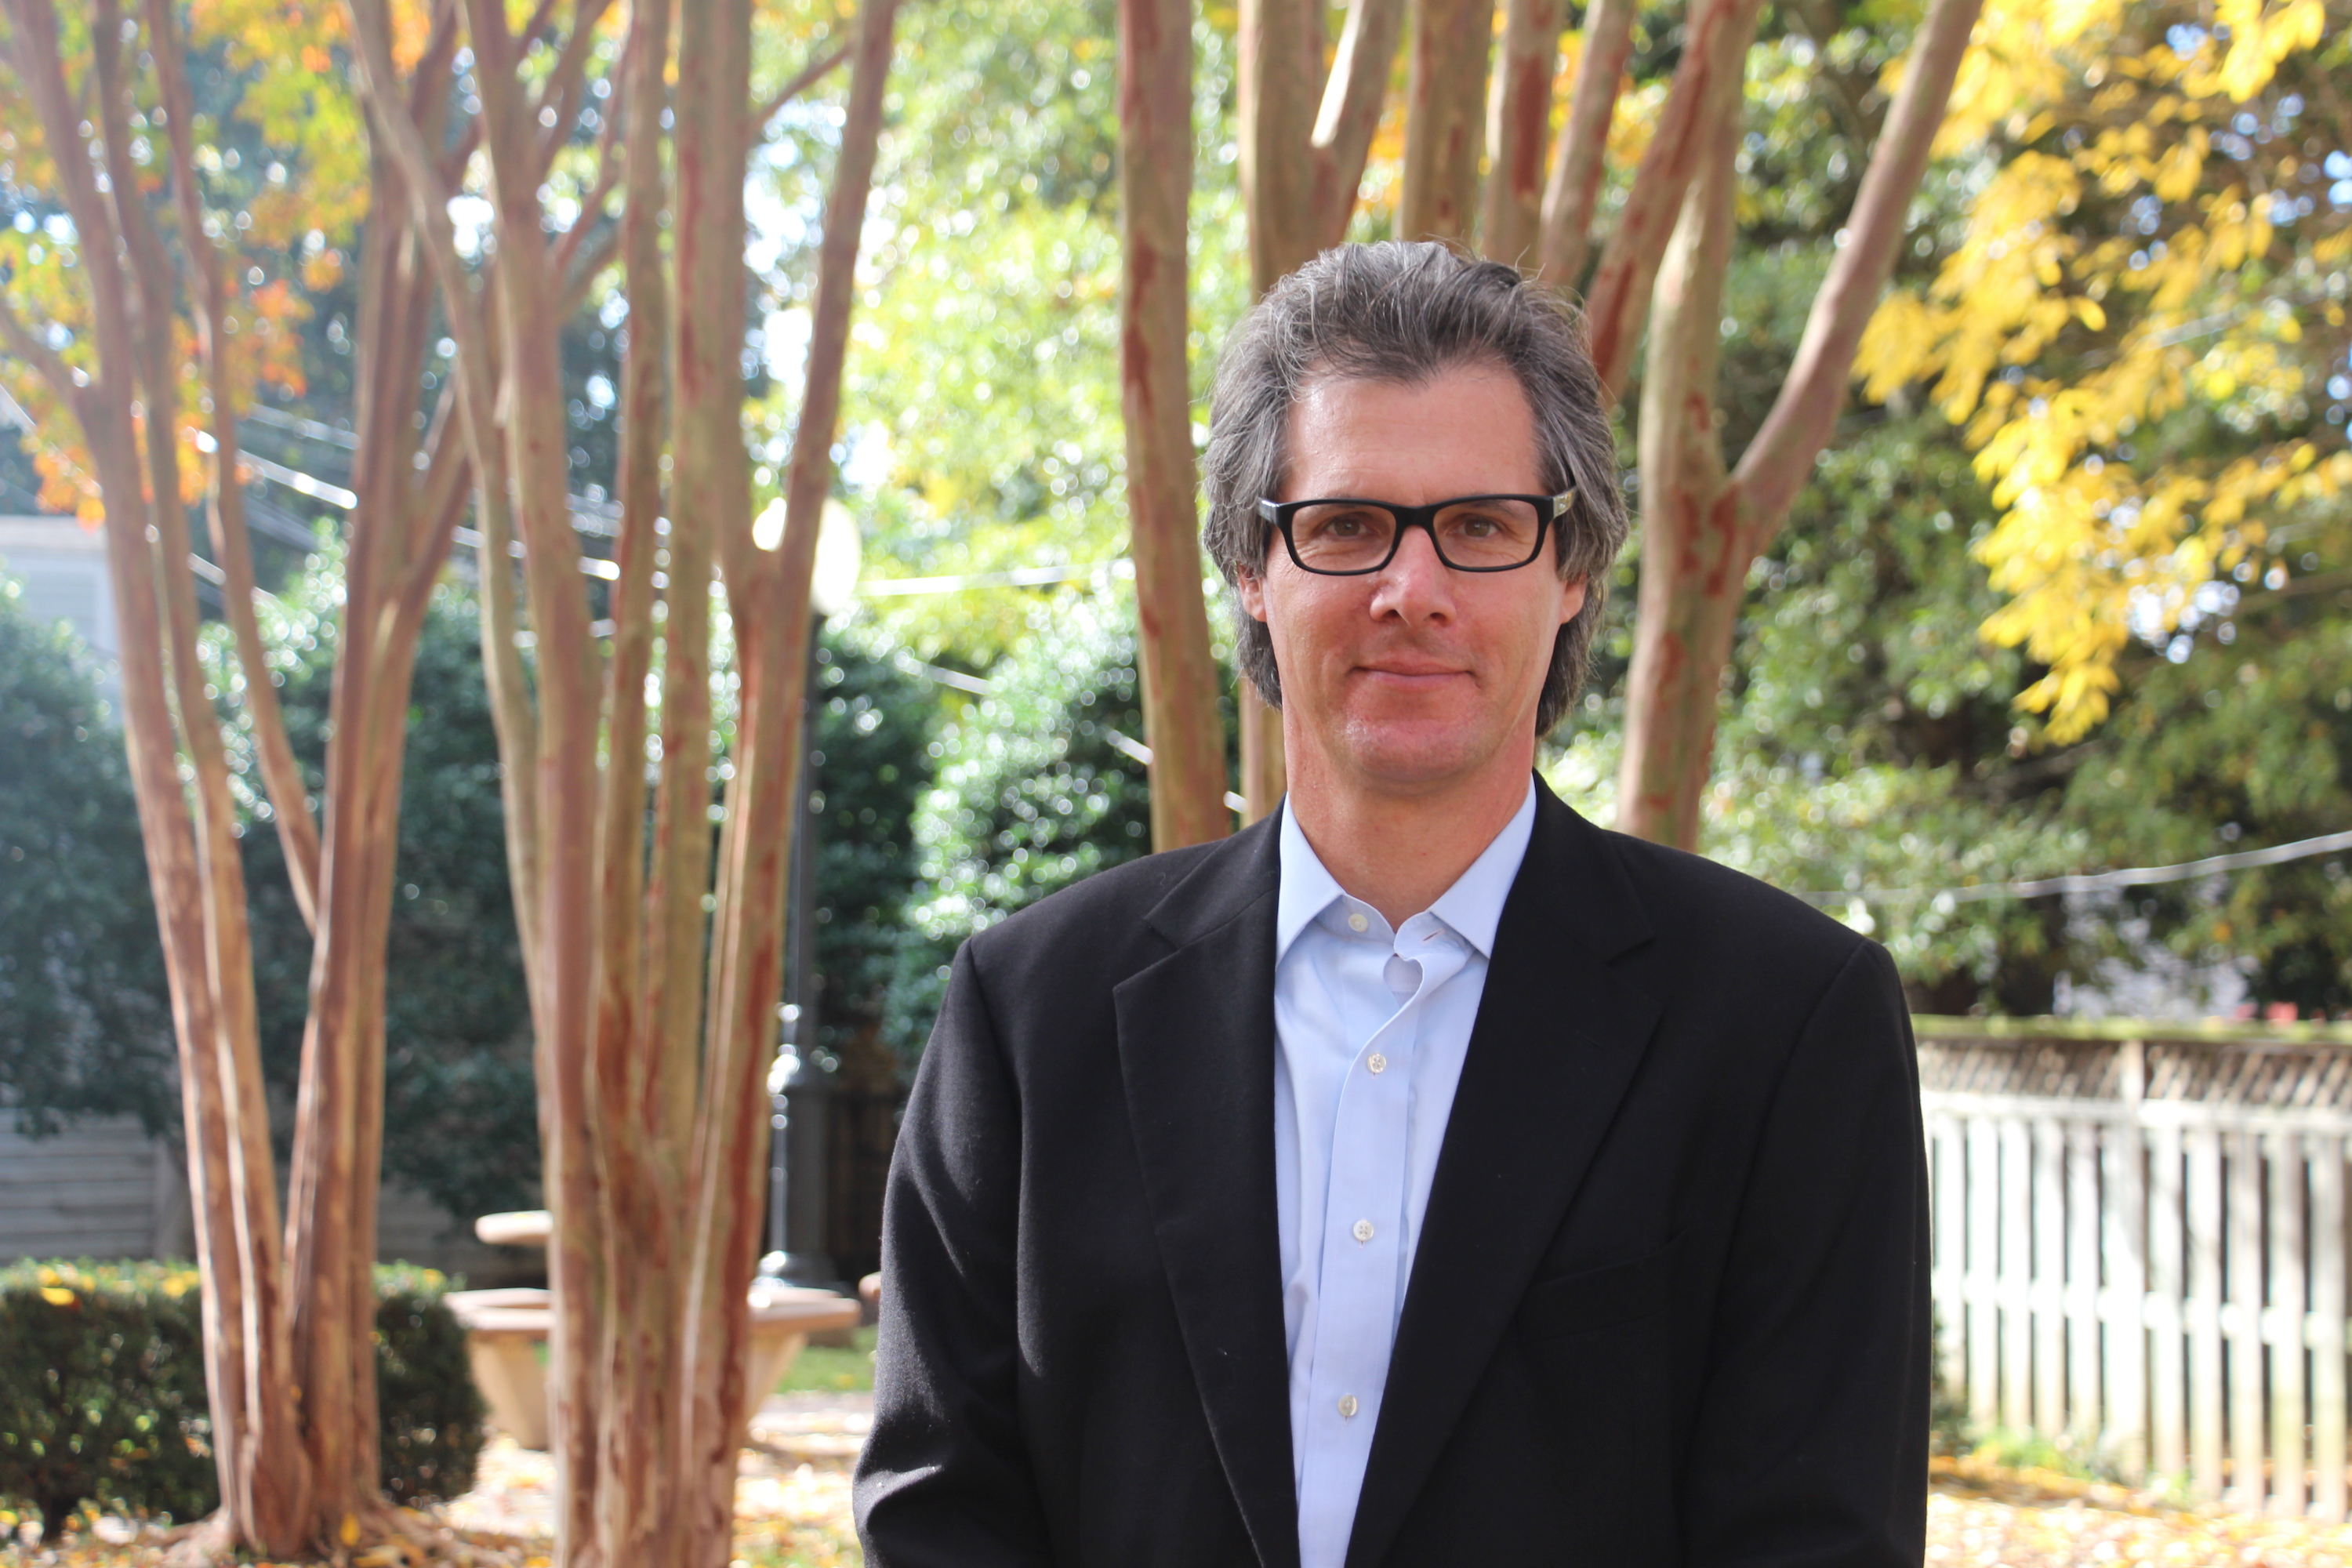 Faculty Interview Series: An Interview with Dr. Keir Lieber, Incoming CSS/SSP Director